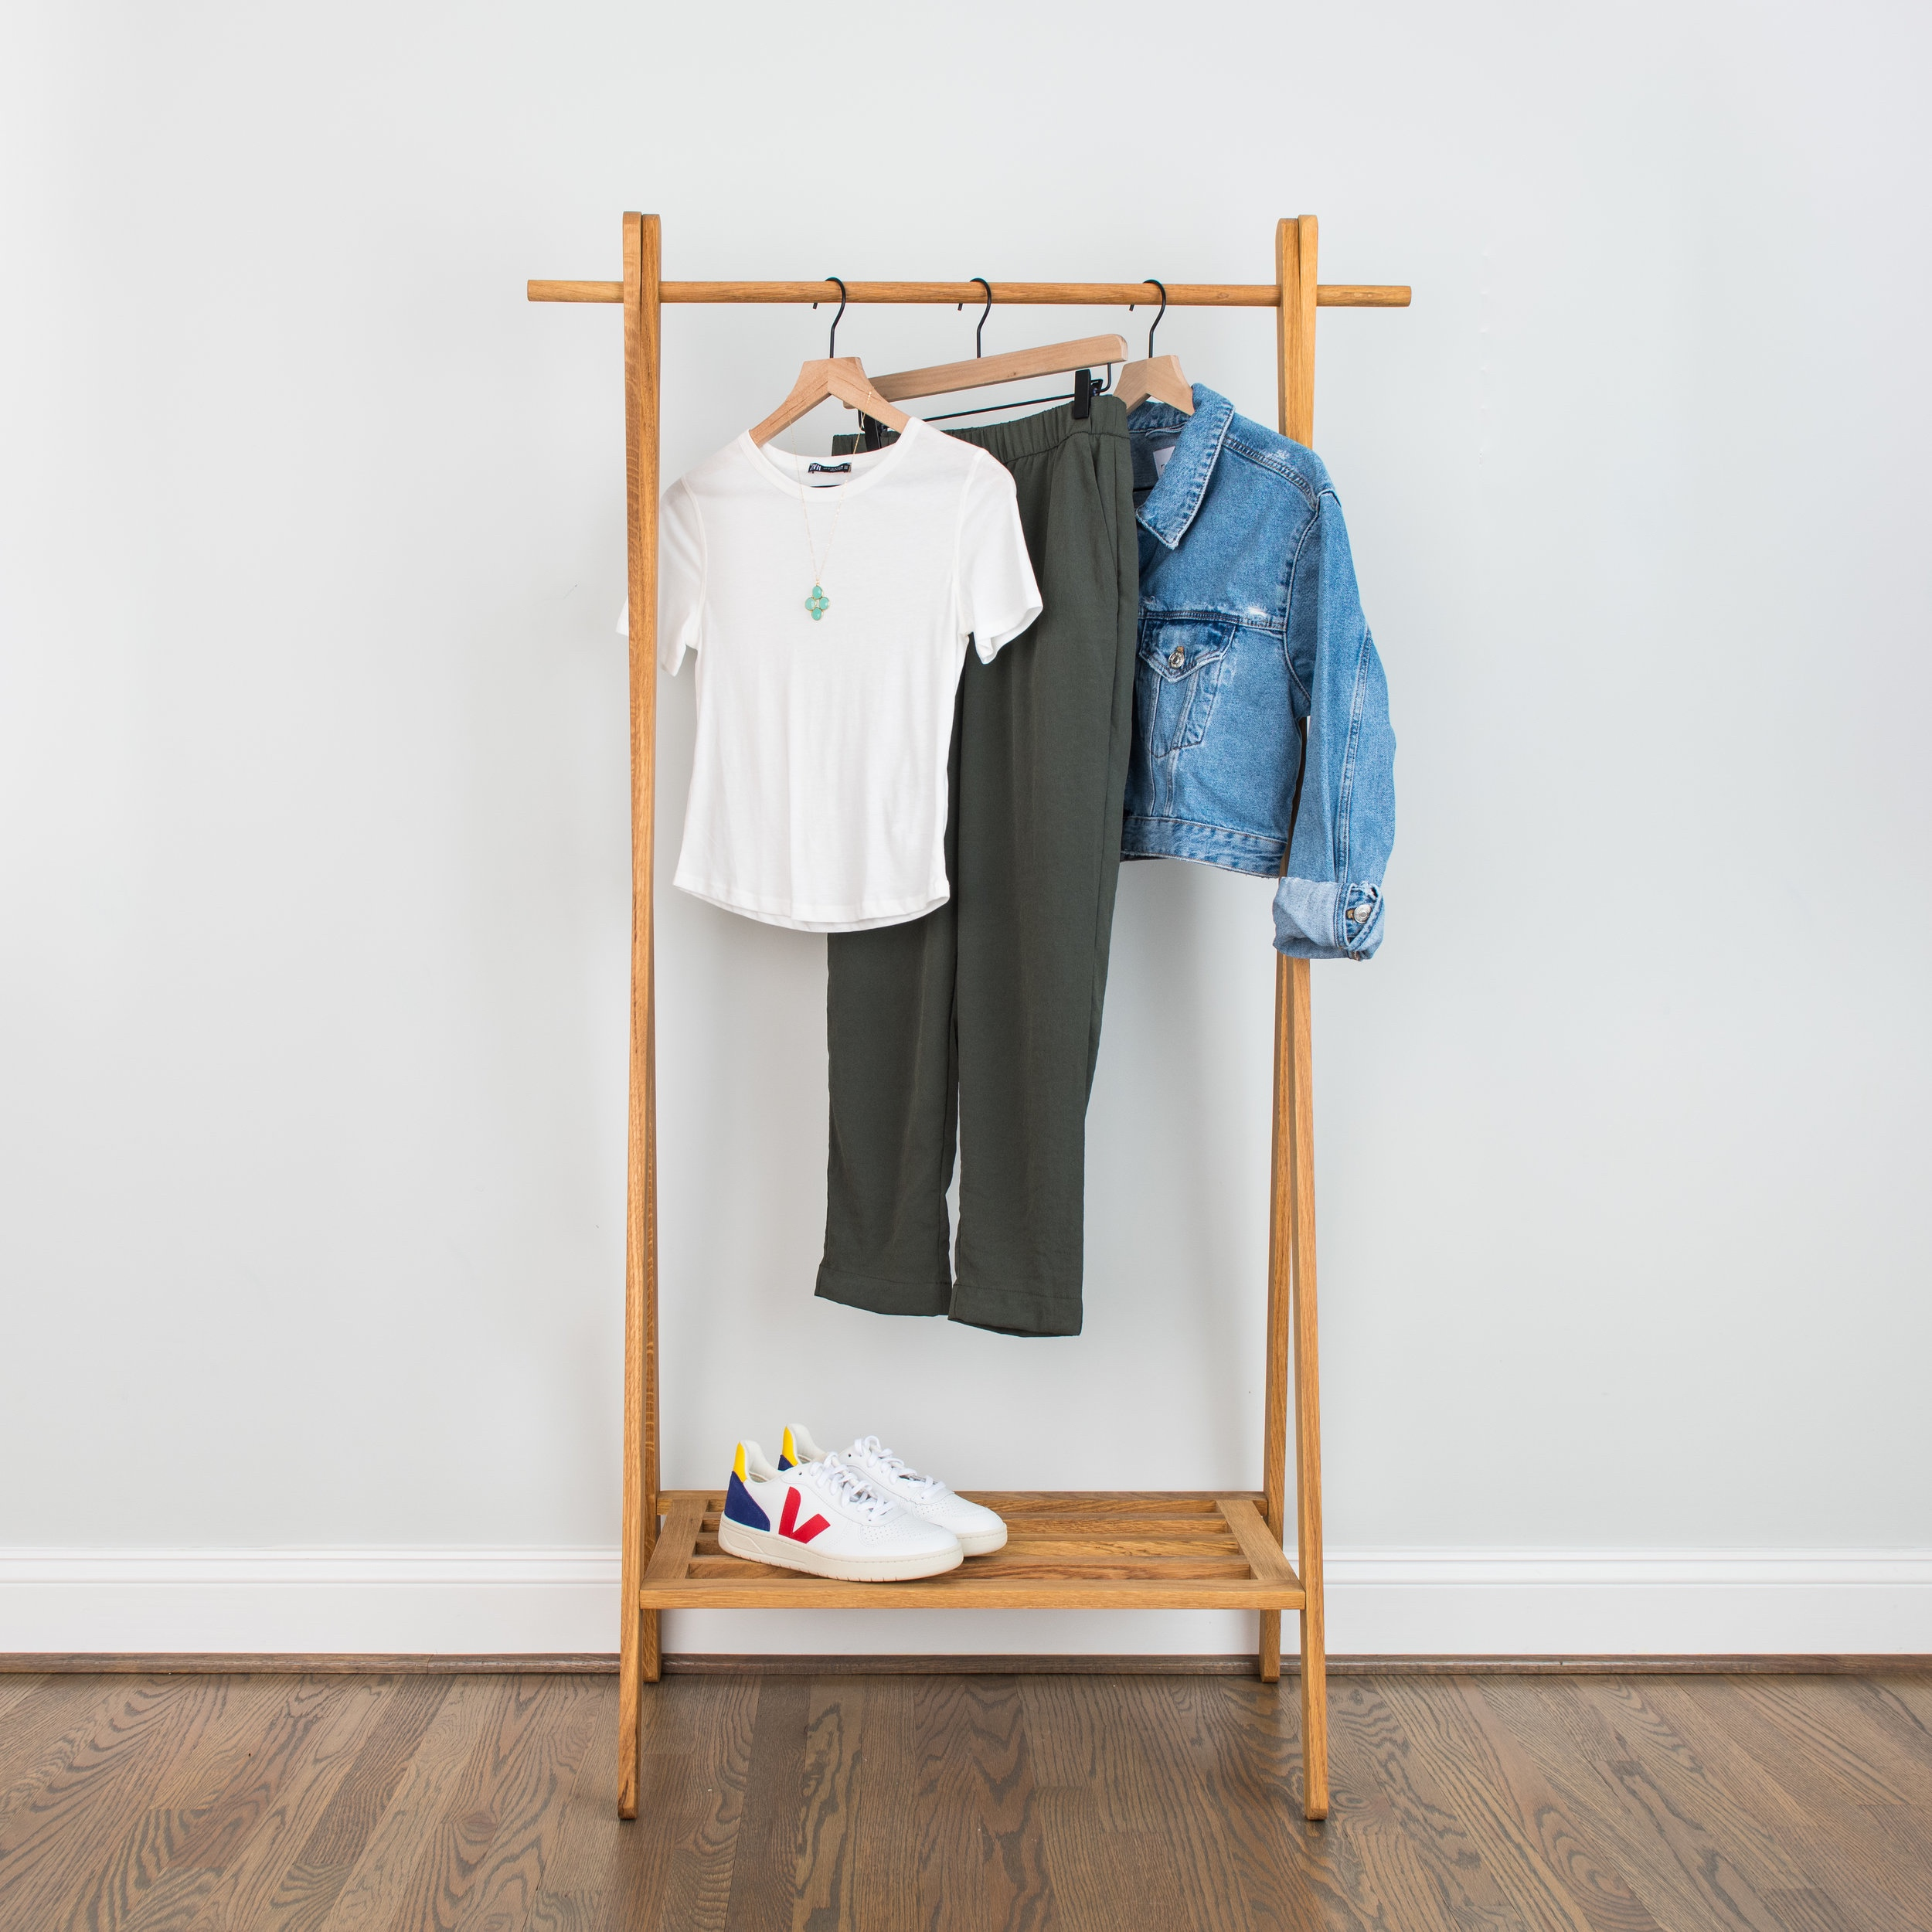 Jog-Leisure Cool - The perfect outfit for a Fall daytime outing. You can layer the jacket over for a cooler morning or evening and feel stylish all day.White T-Shirt: 1 // 2 // 3Dressy Joggers: 1 // 2 // 3Denim Jacket: 1 // 2 // 3Leather Sneakers: 1 // 2 // 3Green Necklace: 1 // 2 // 3